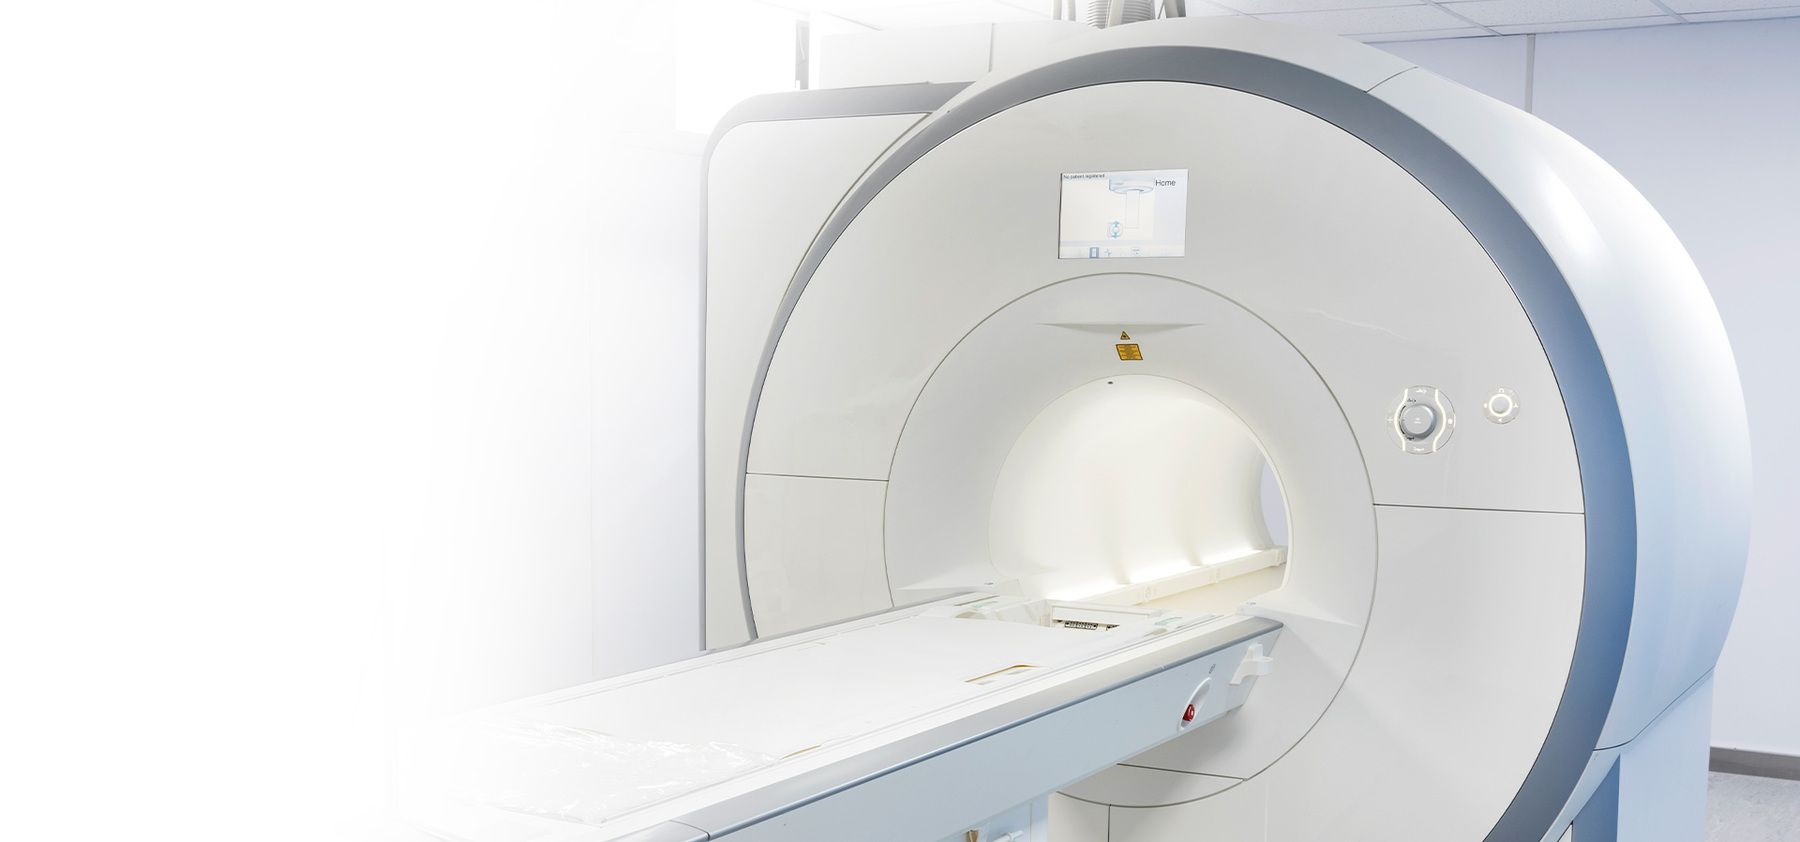 ct machine from the right